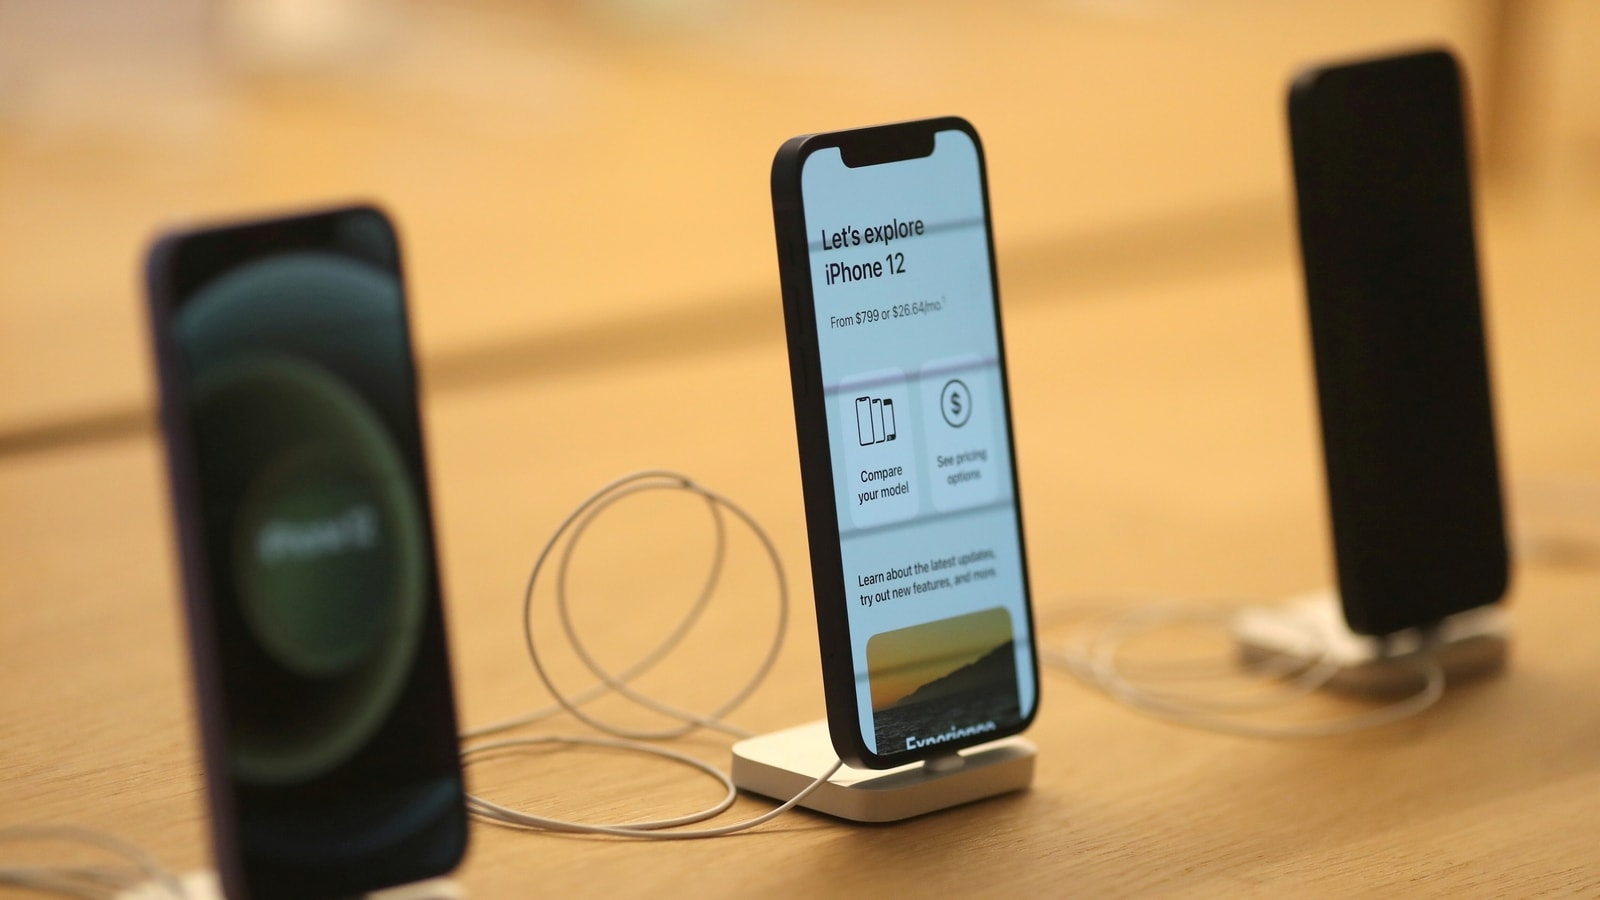 Apple's 2022 lineup will be complete with all 5G-enabled iPhones: the report